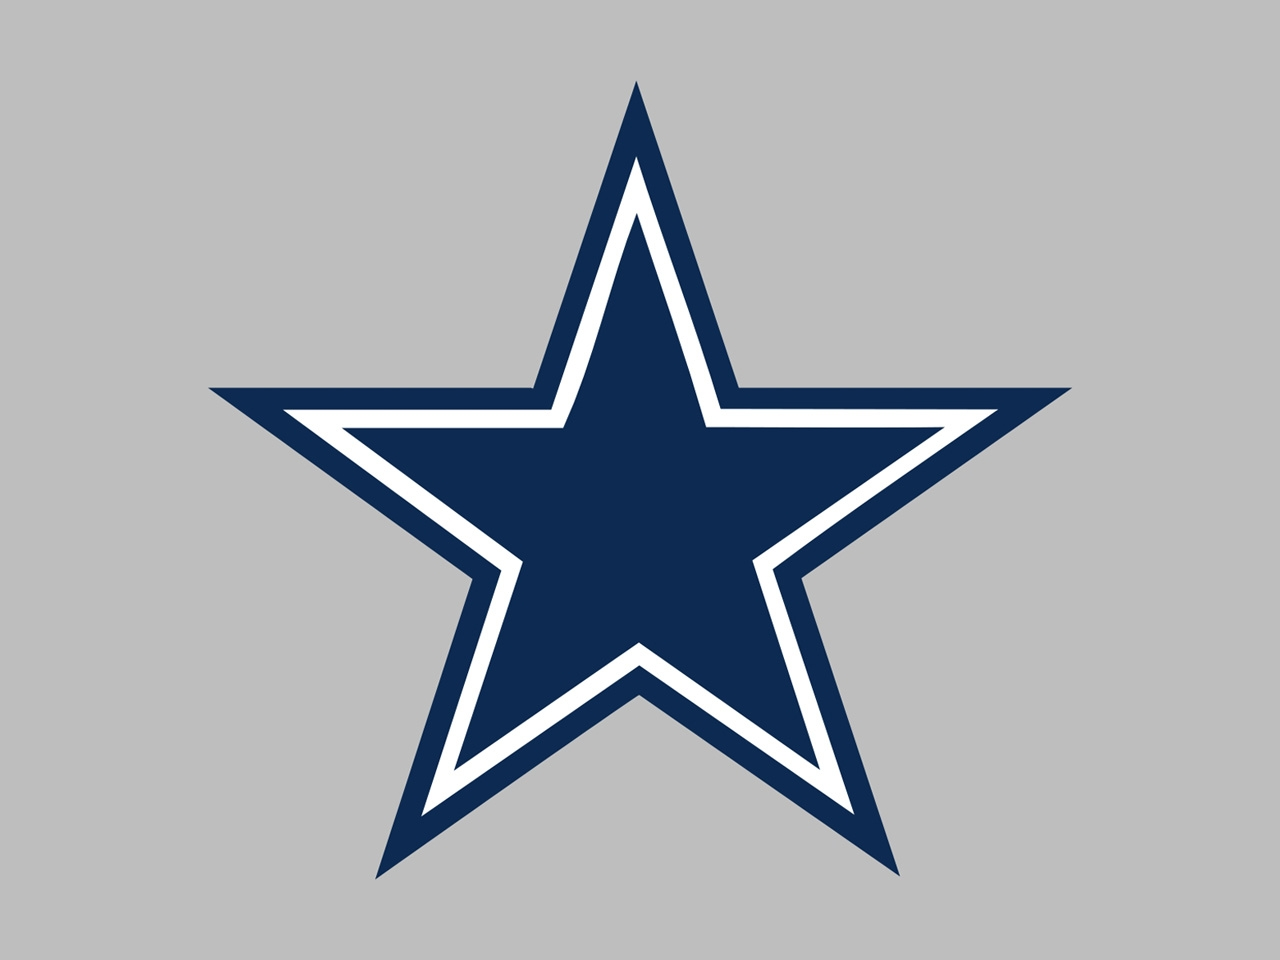 Dallas Cowboys Star Picture 1280x960px Wallpaper Background ...